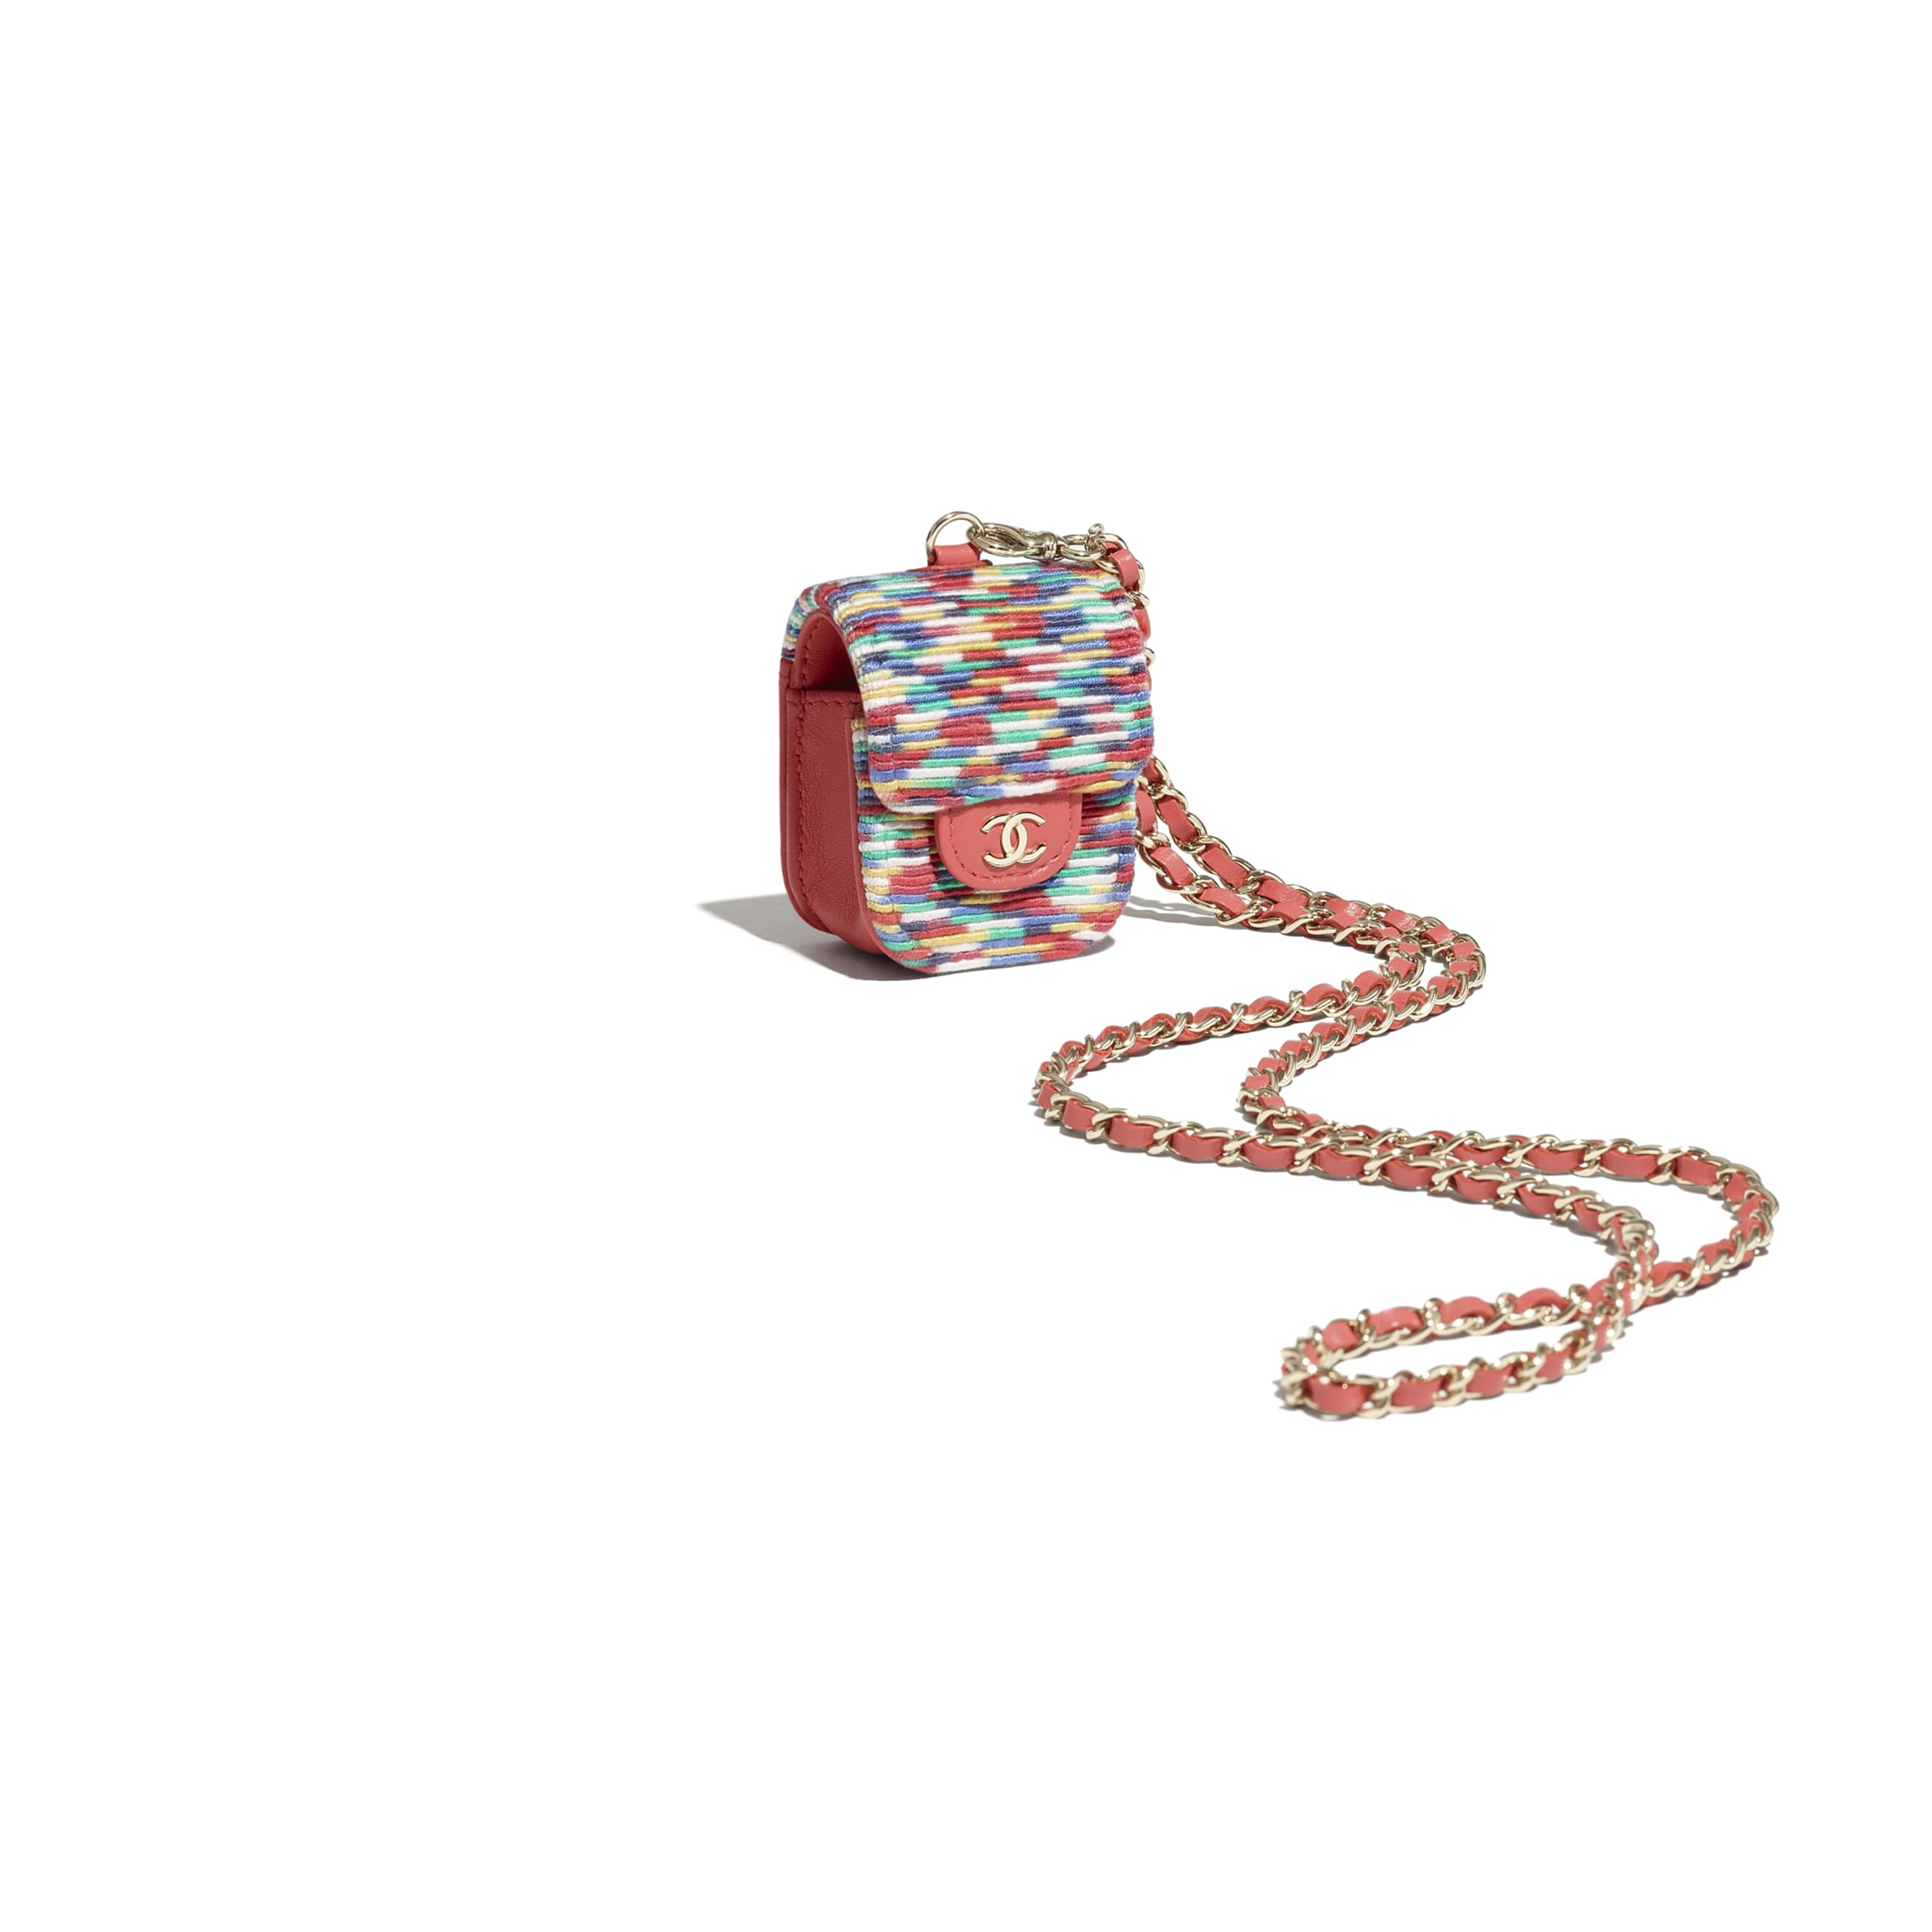 AirPods Case - Multicolour - Embroidered Thread & Gold-Tone Metal - CHANEL - Other view - see standard sized version